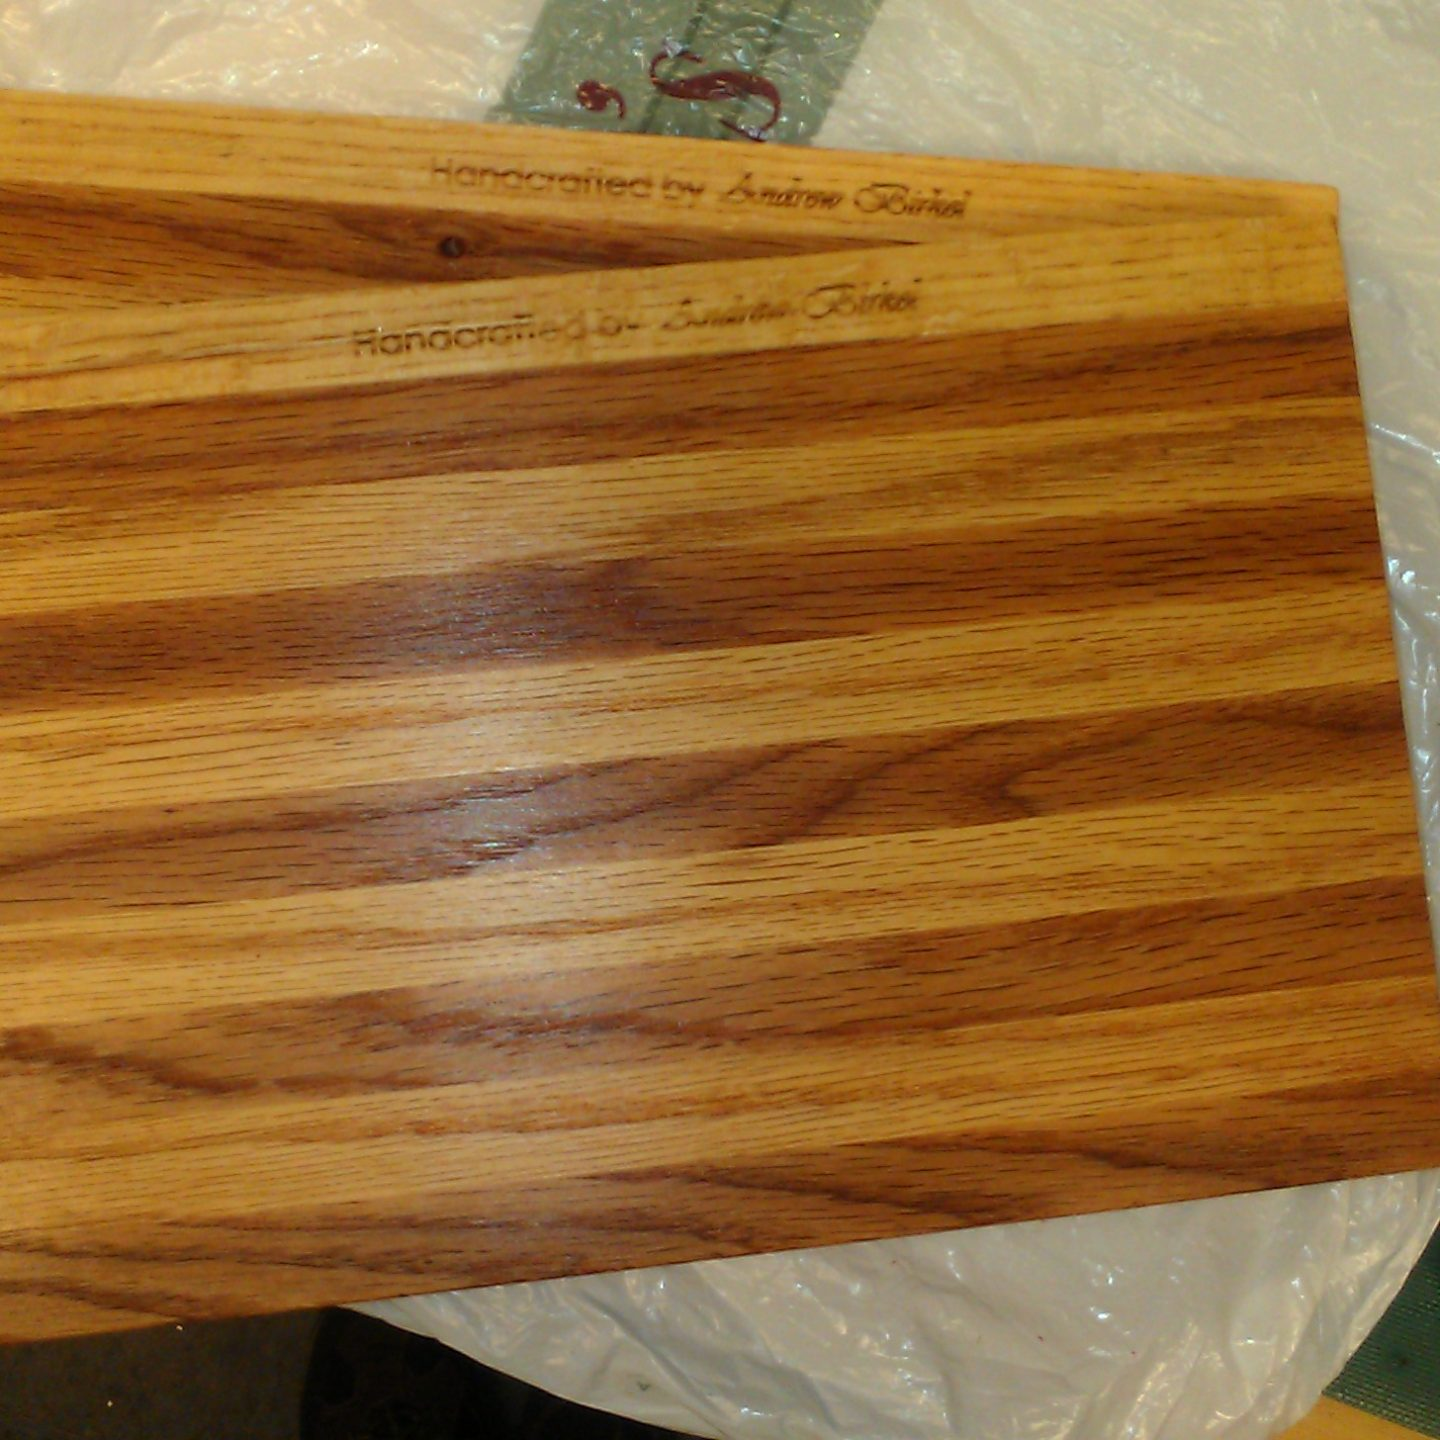 [07.14.14]Home-made Cutting Boards: Simple Wood-working